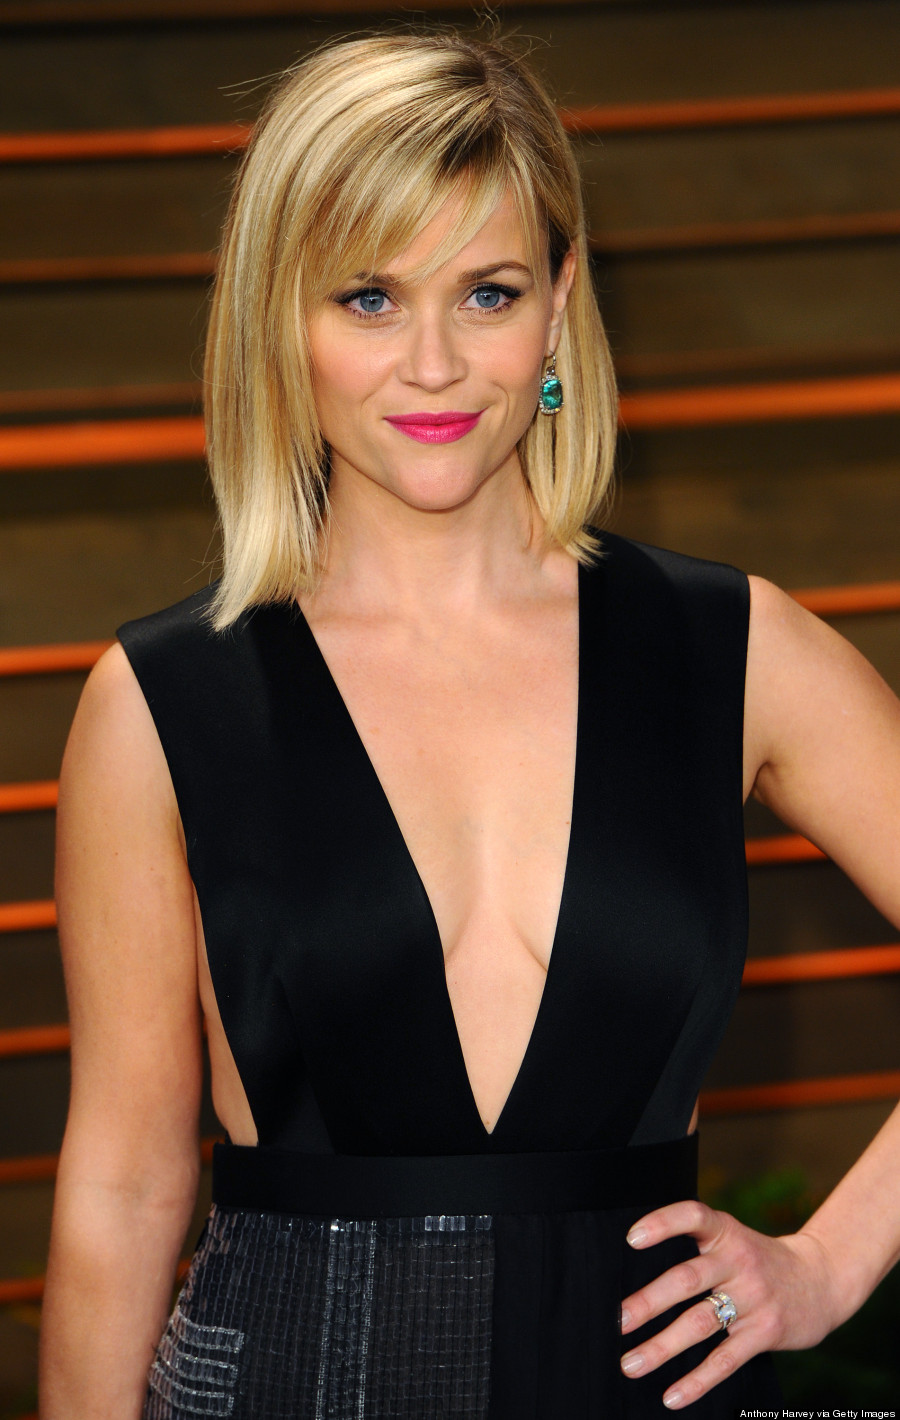 Sexy pictures of reese witherspoon